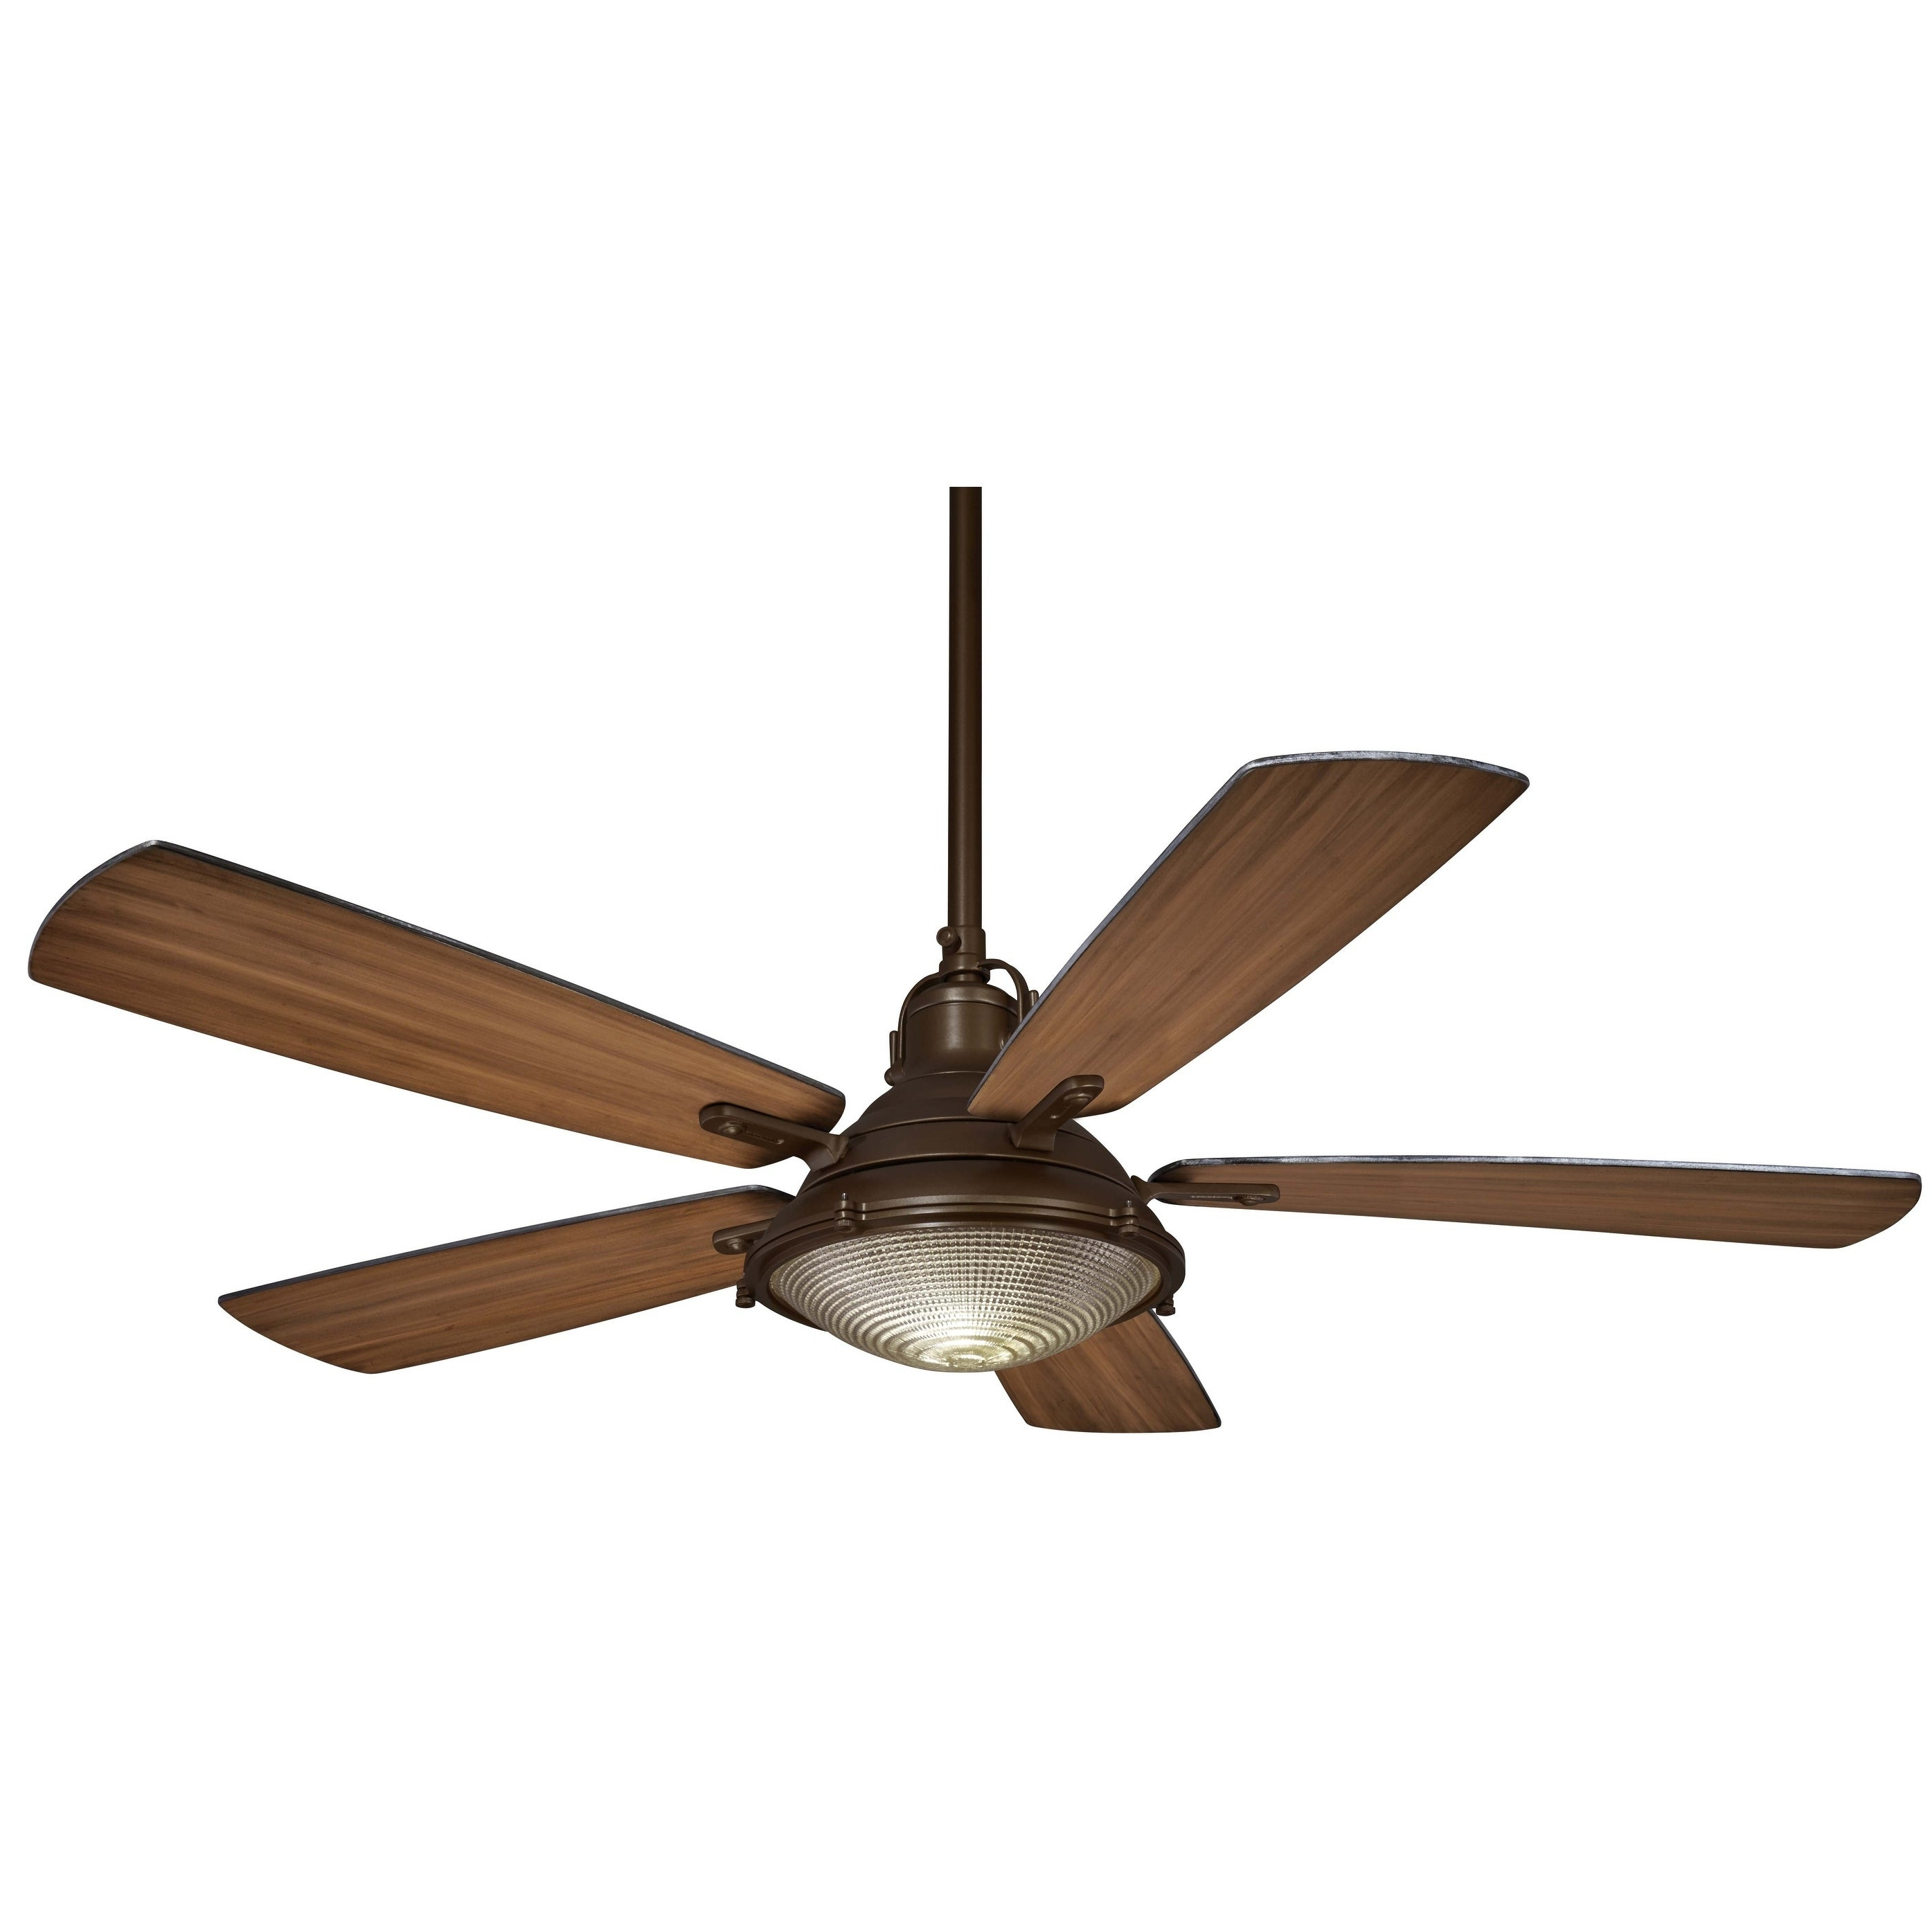 Find Great Ceiling Fans For Popular Acero Retro 3 Blade Led Ceiling Fans (View 13 of 20)